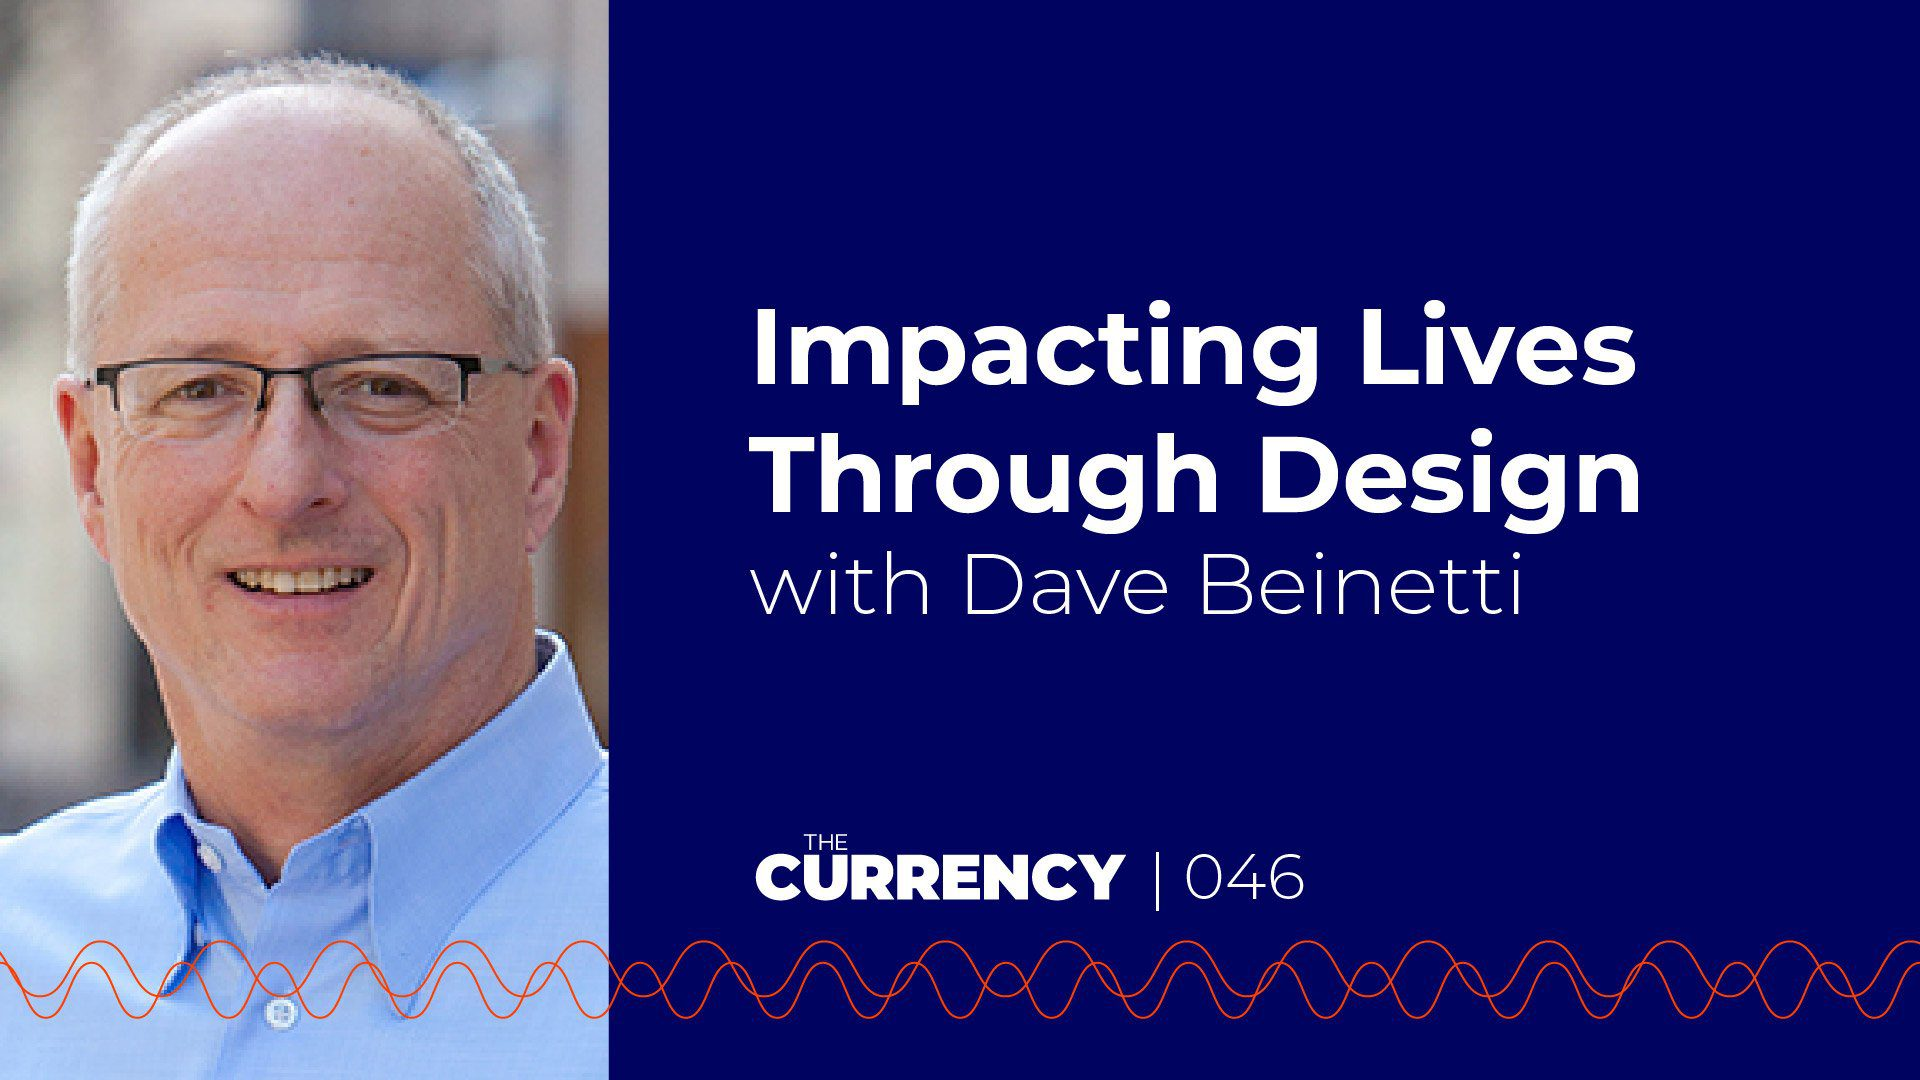 The Currency: [046] Impacting Lives Through Design with Dave Beinetti